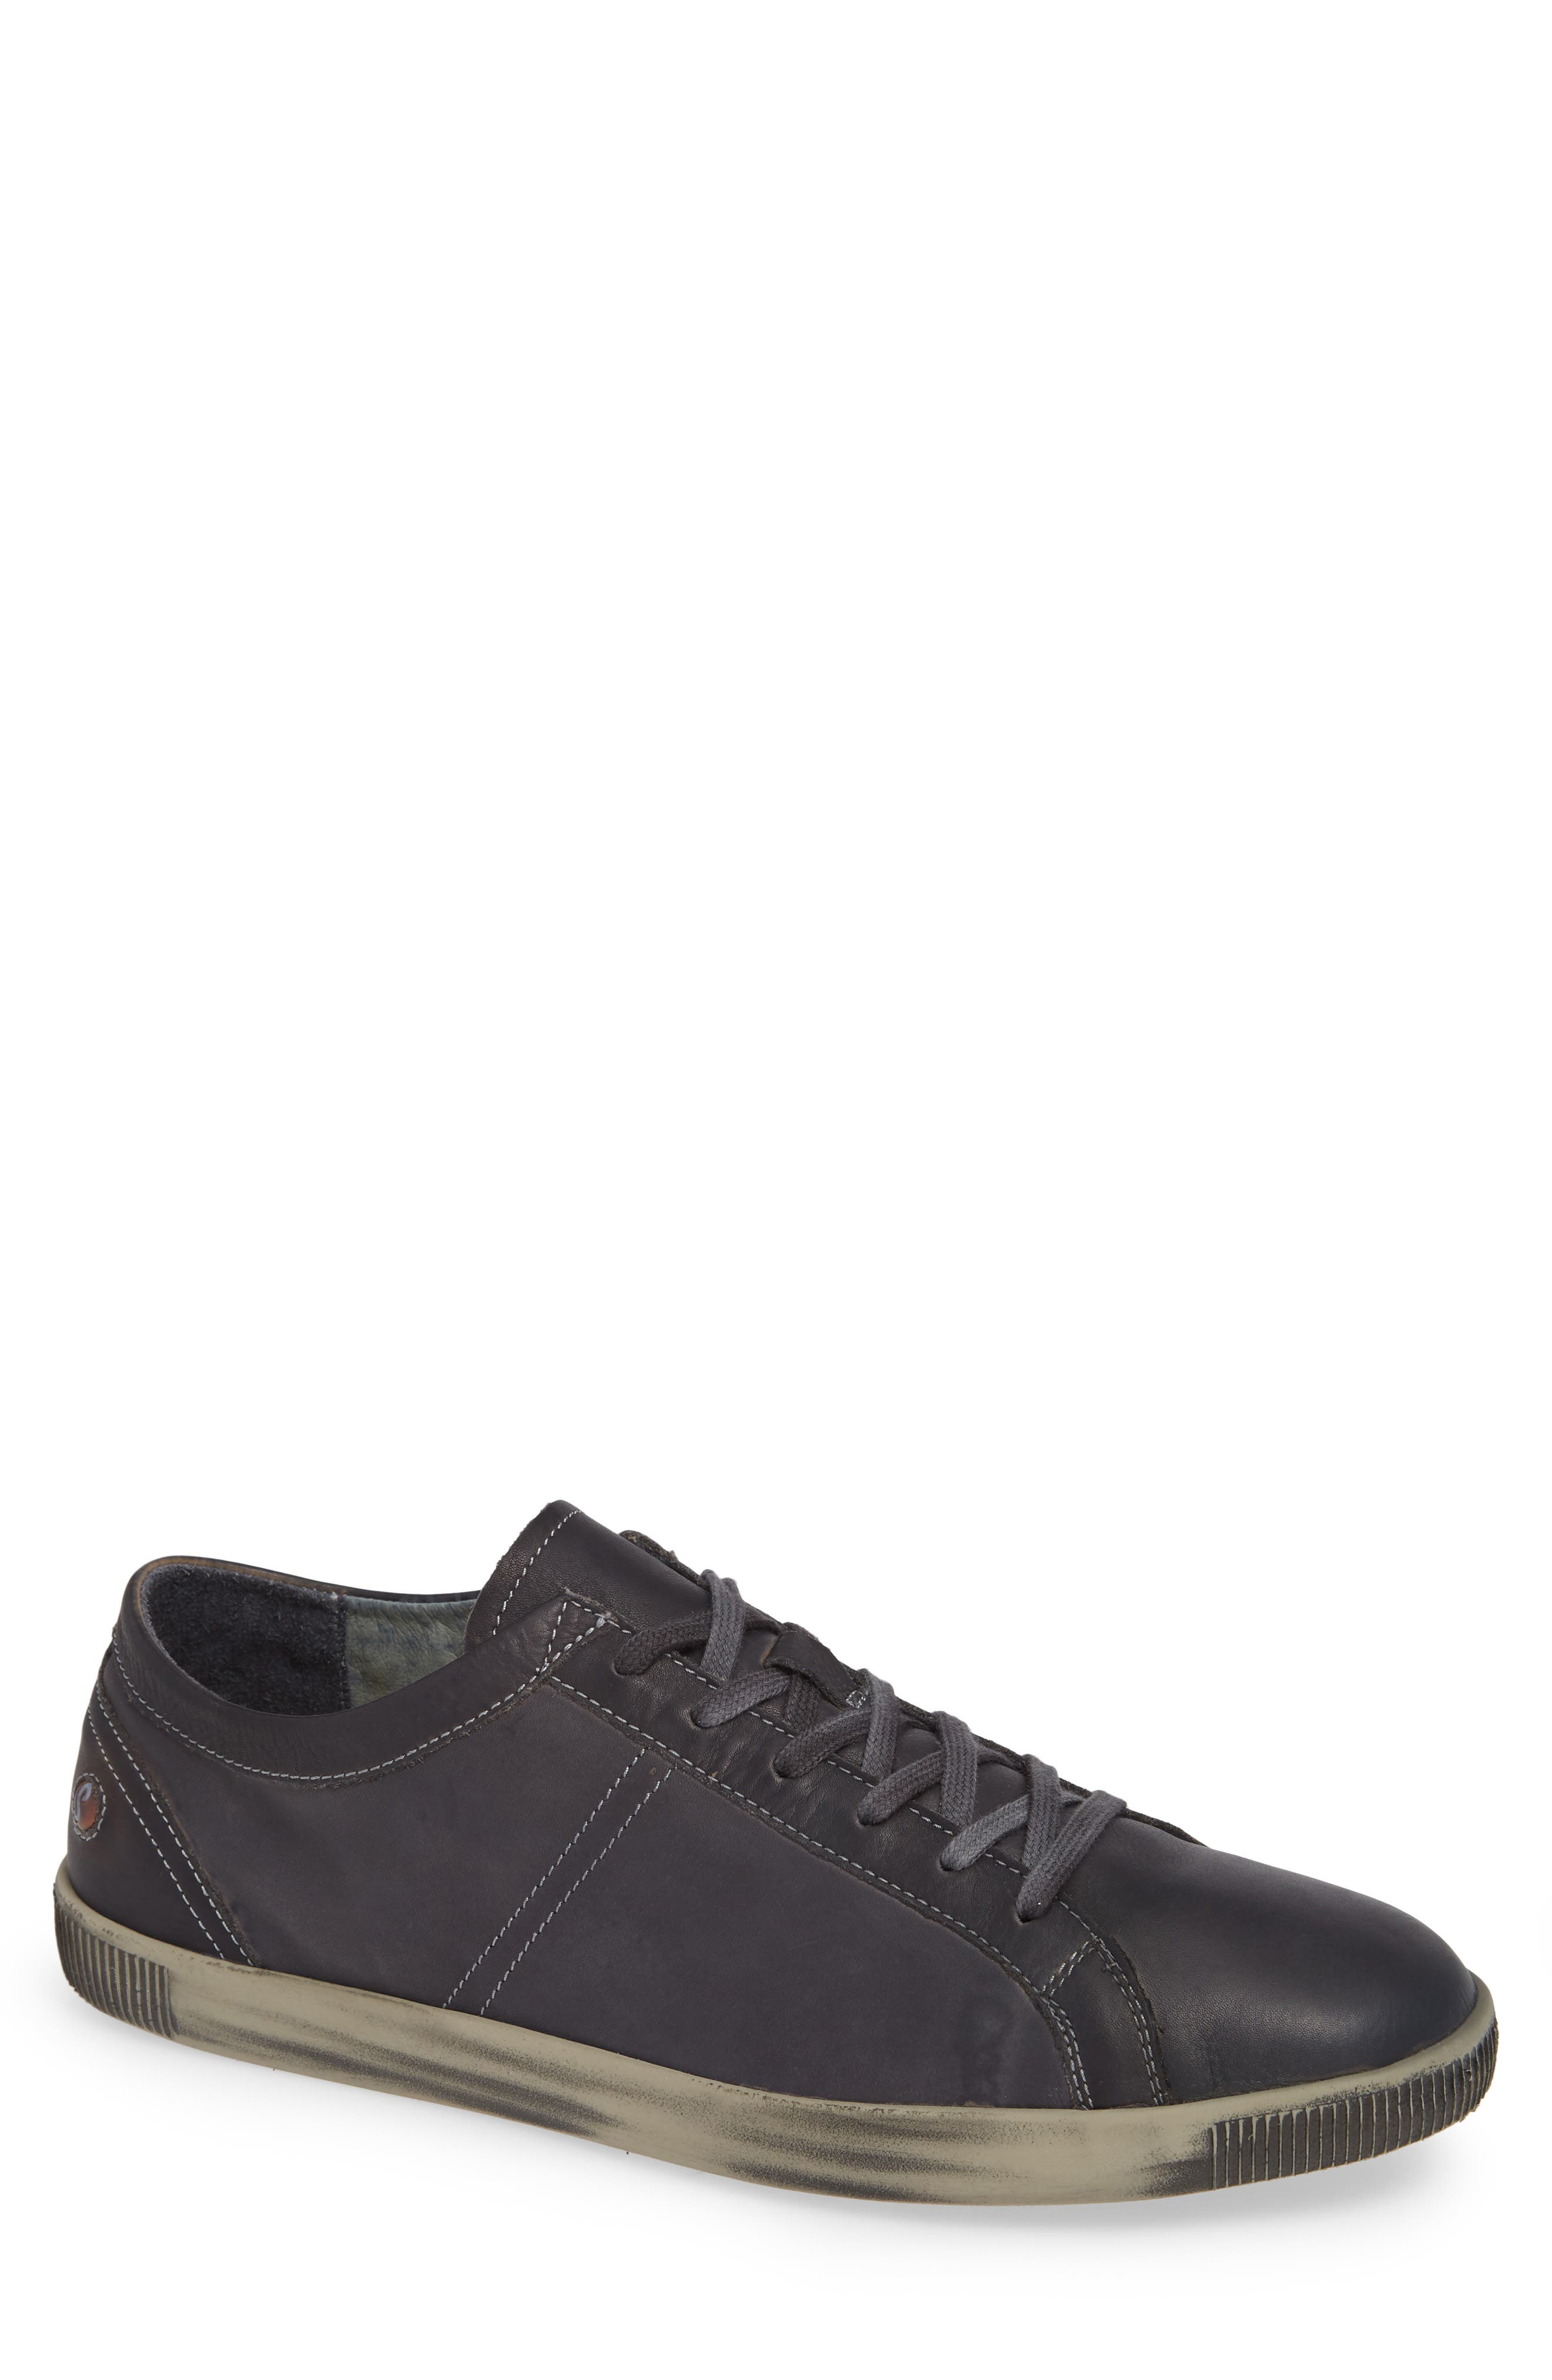 Tom Sneaker,                         Main,                         color, ANTHRACITE WASHED LEATHER